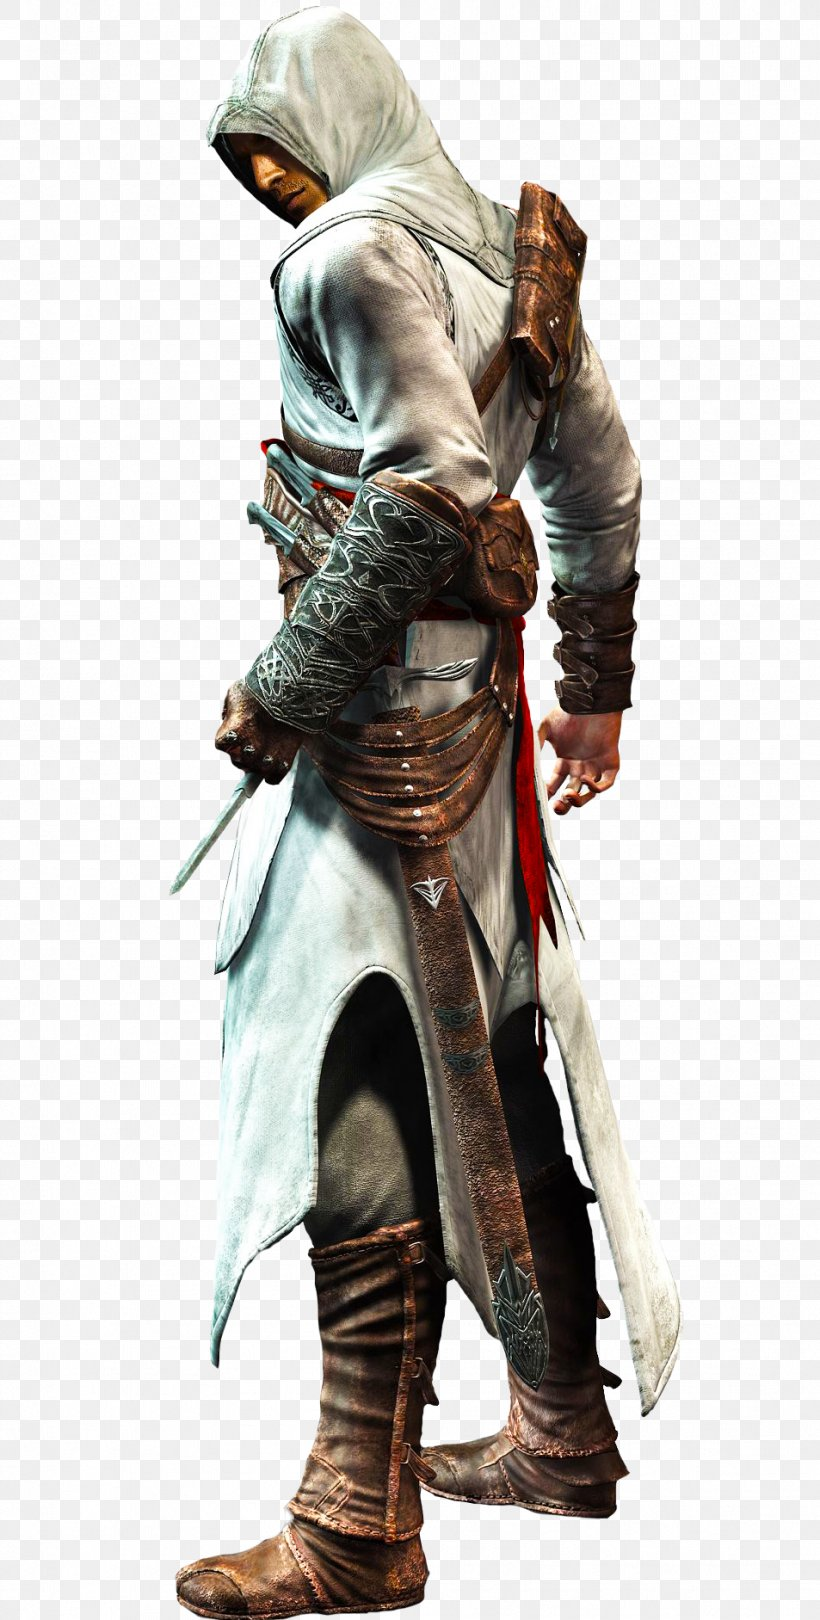 Assassins Creed III Assassins Creed: Bloodlines Assassins Creed: Revelations, PNG, 953x1883px, Assassins Creed, Action Figure, Altaxefr Ibnlaahad, Armour, Assassins Download Free